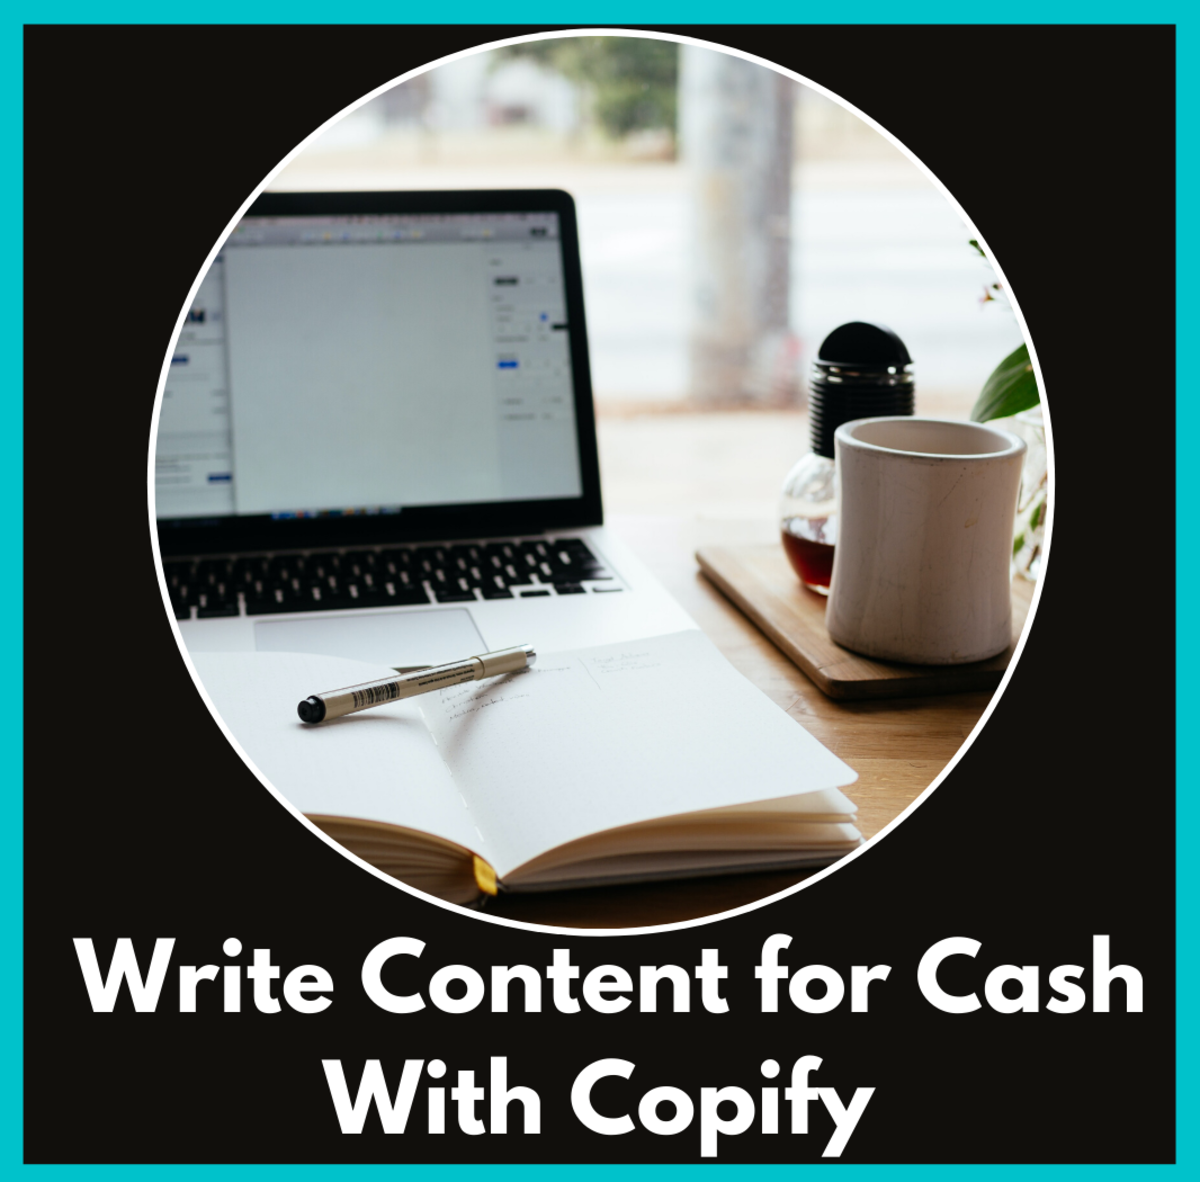 Write Content for Cash With Copify